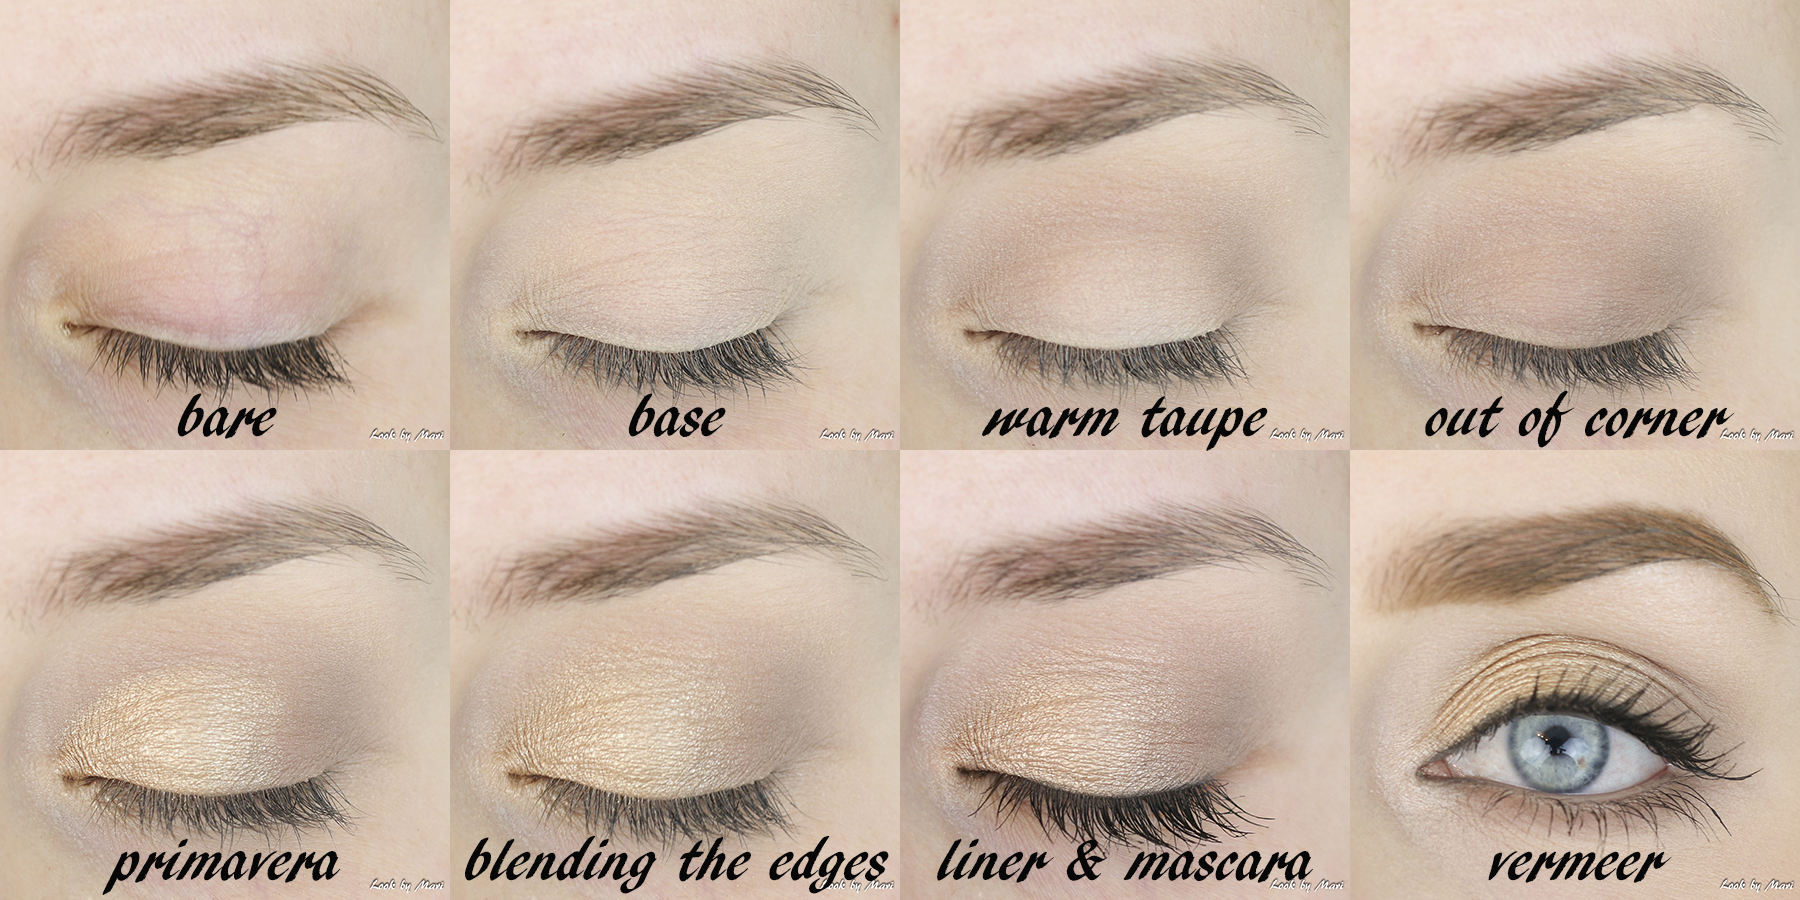 6 easy gold eye makeup glam party step by step easy for beginners